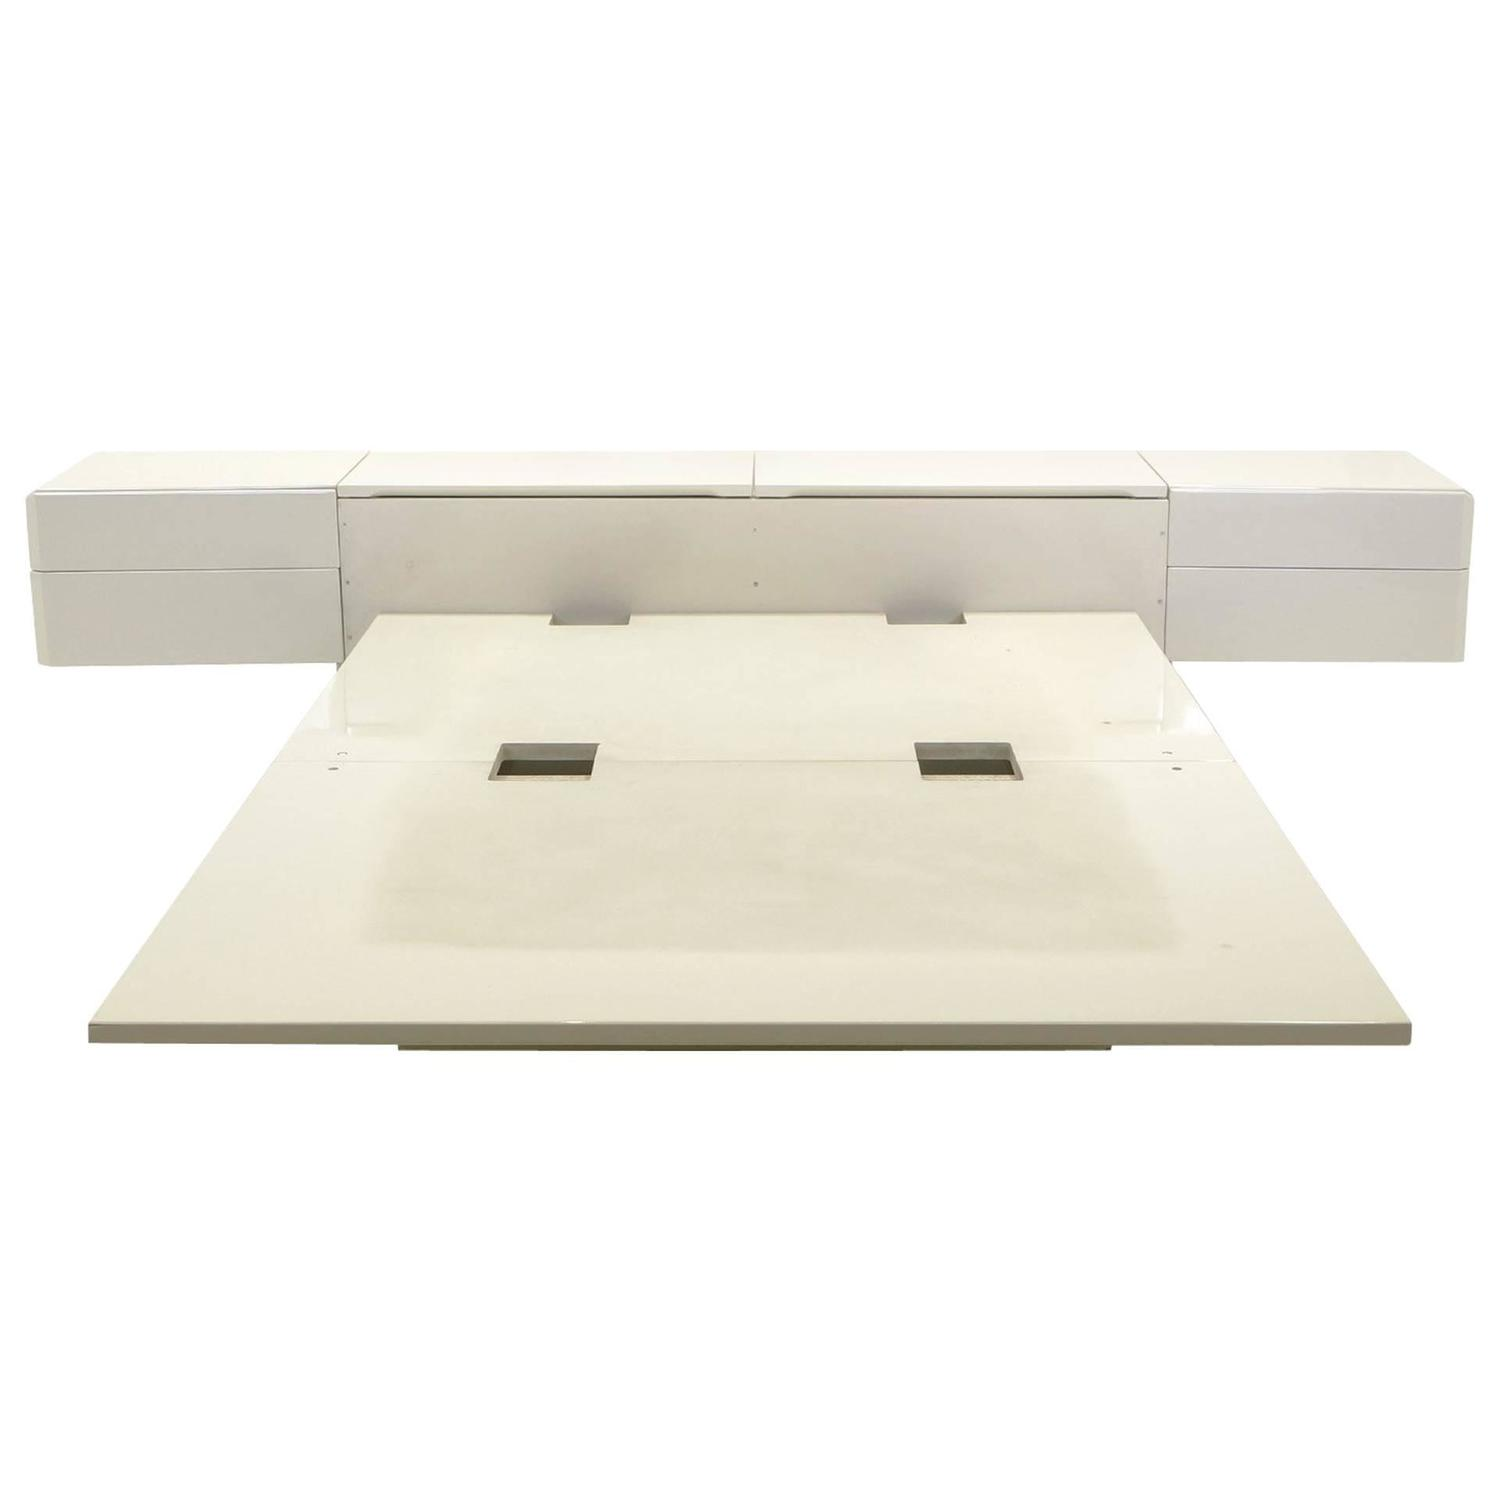 Queen Ivory Platform Bed With Attached Nightstands And